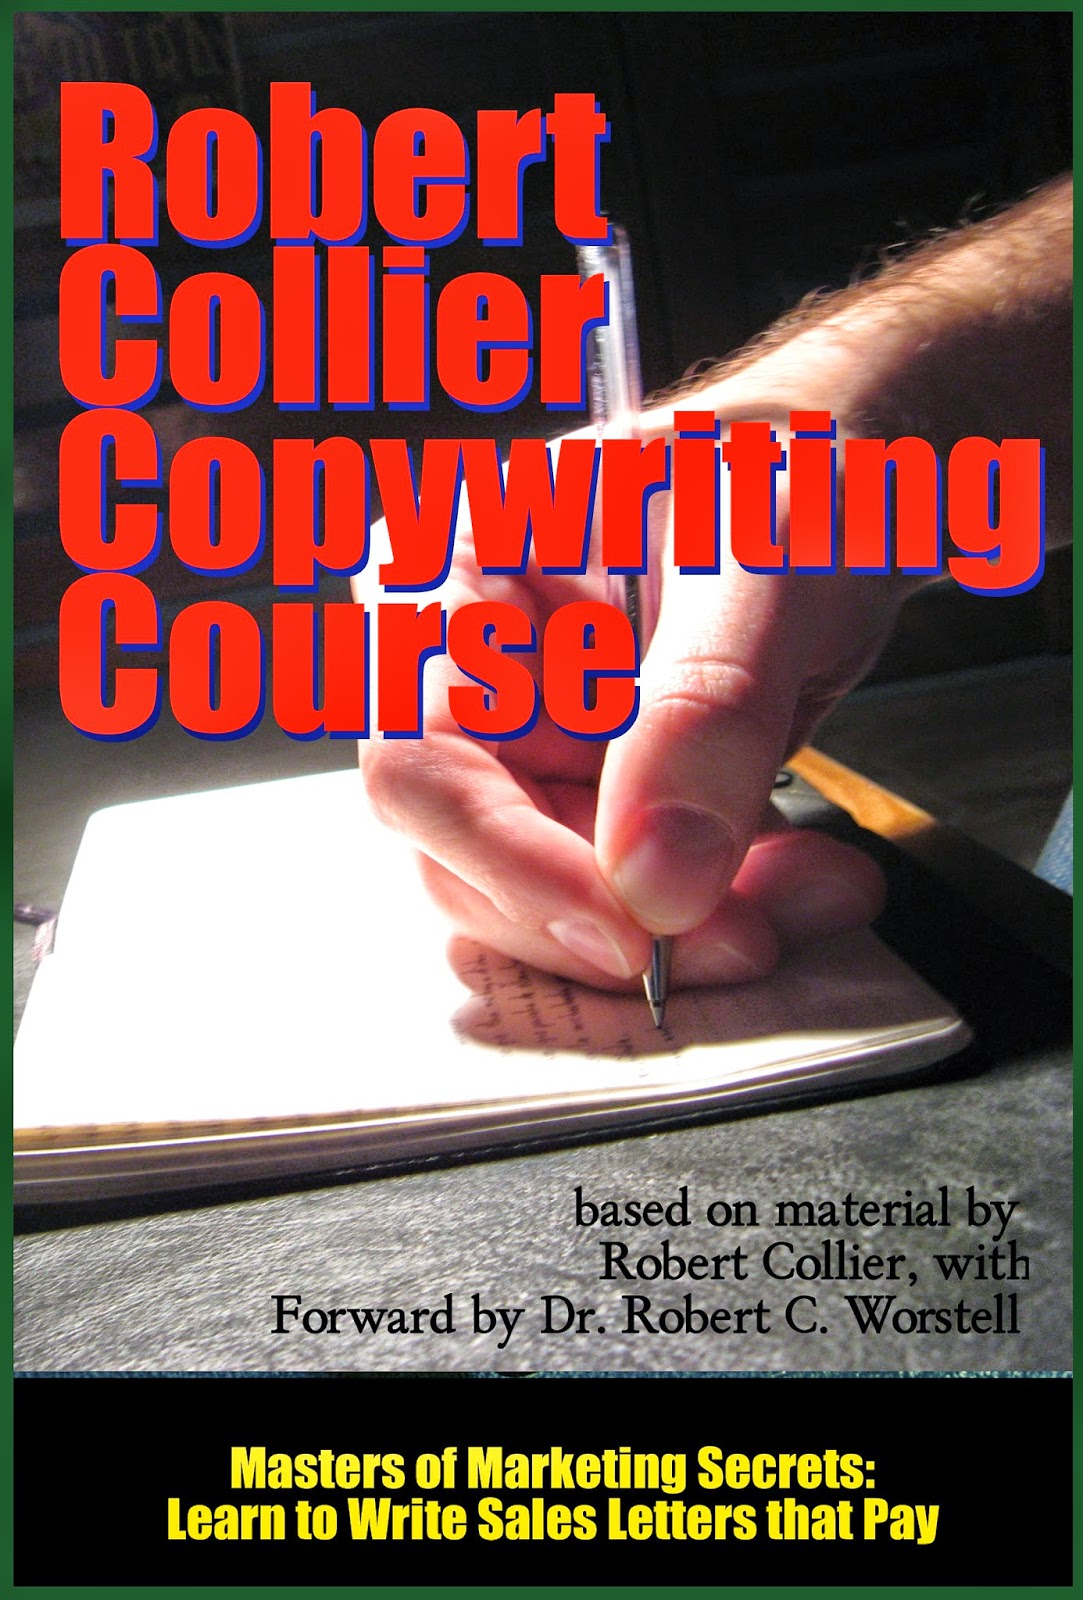 The Robert Collier Copywriting Course - now available as ebook and paperback.